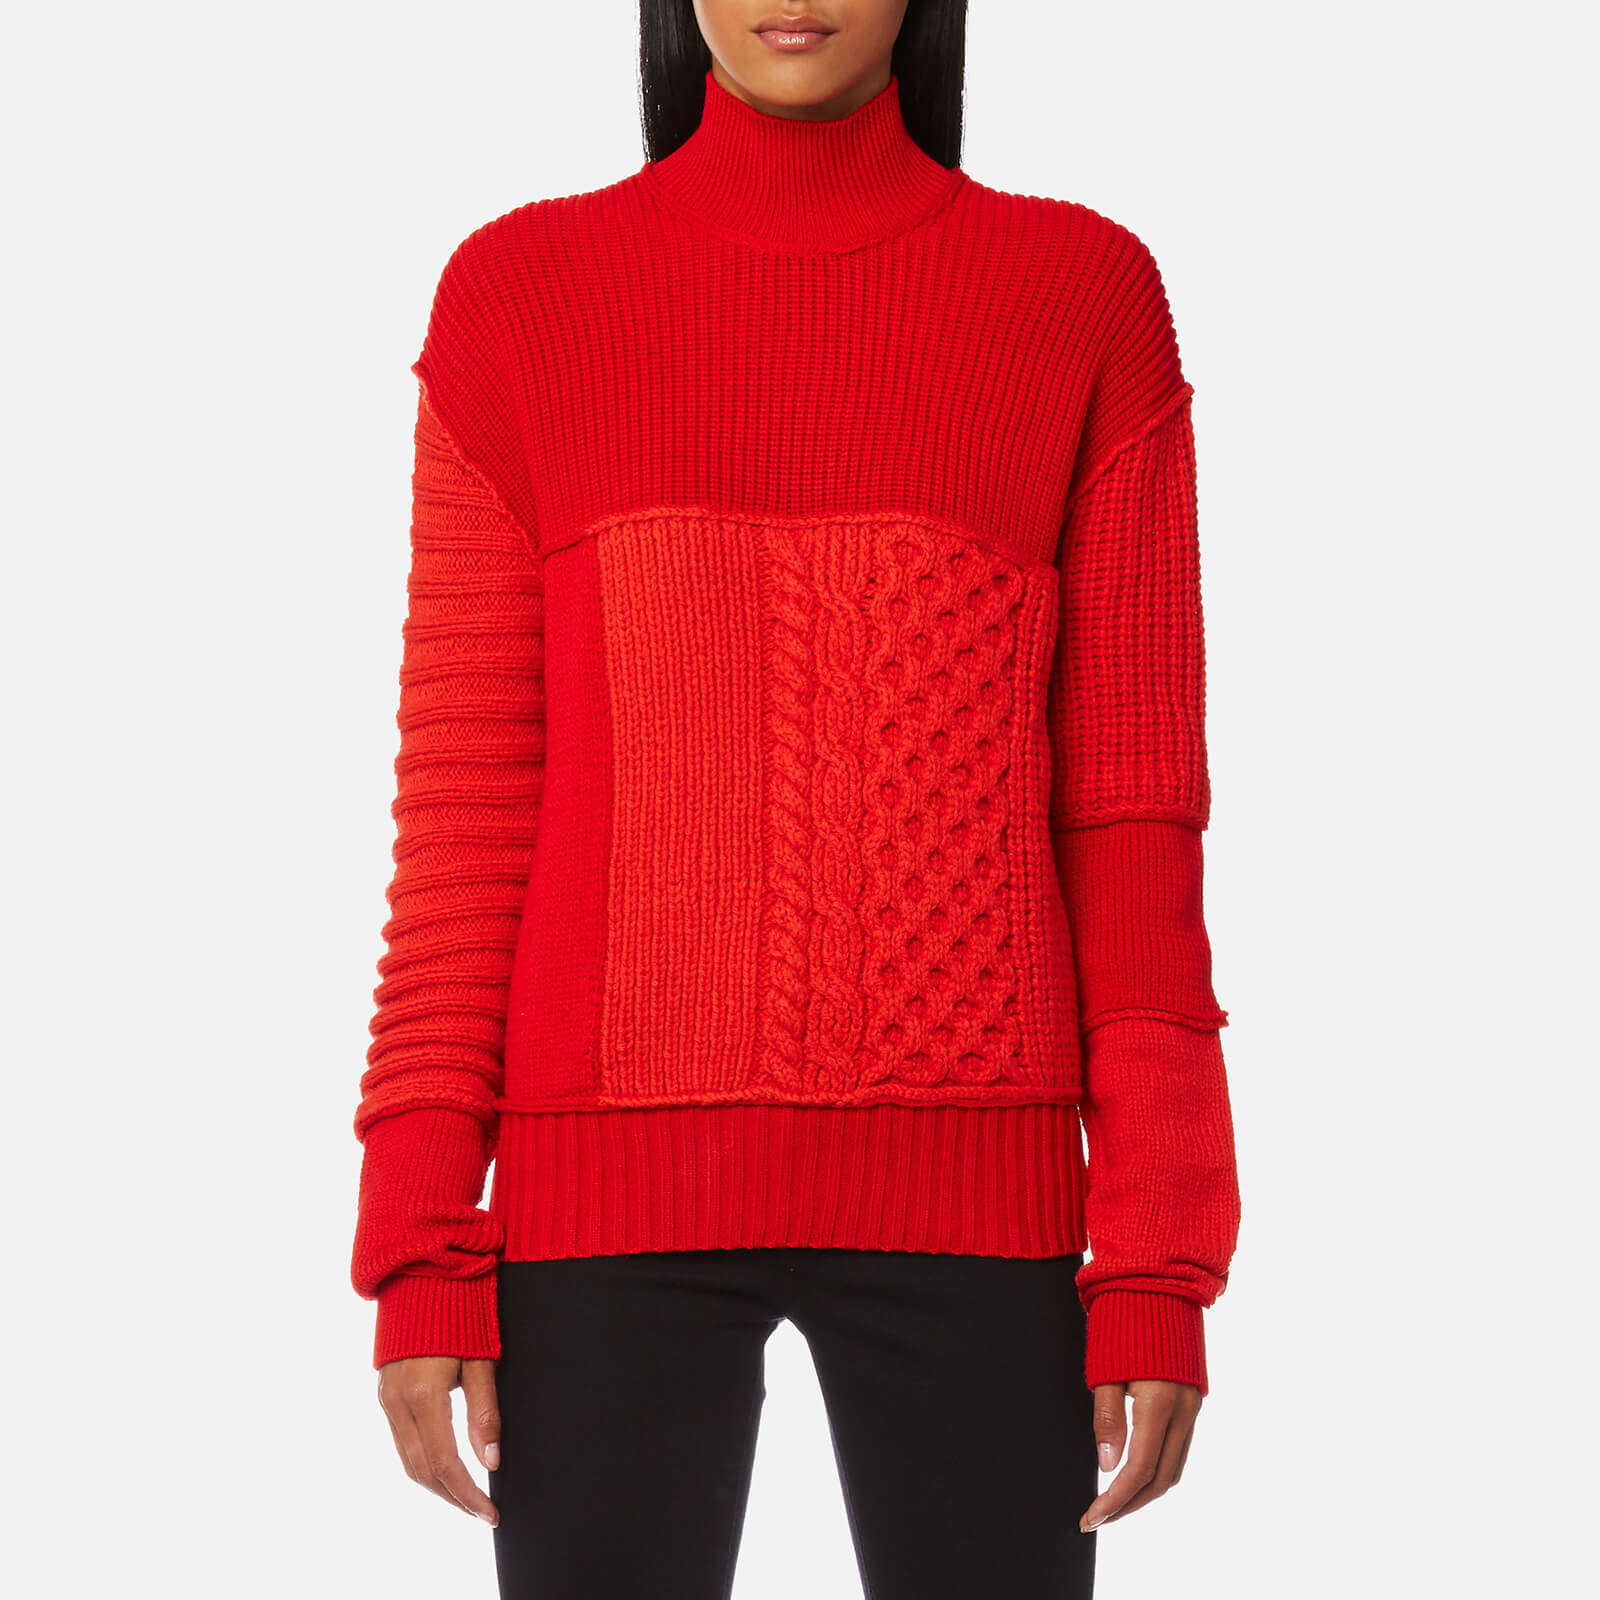 65f41f04e03 McQ Alexander McQueen Women s Cable Mix Crop Jumper - Electric Red